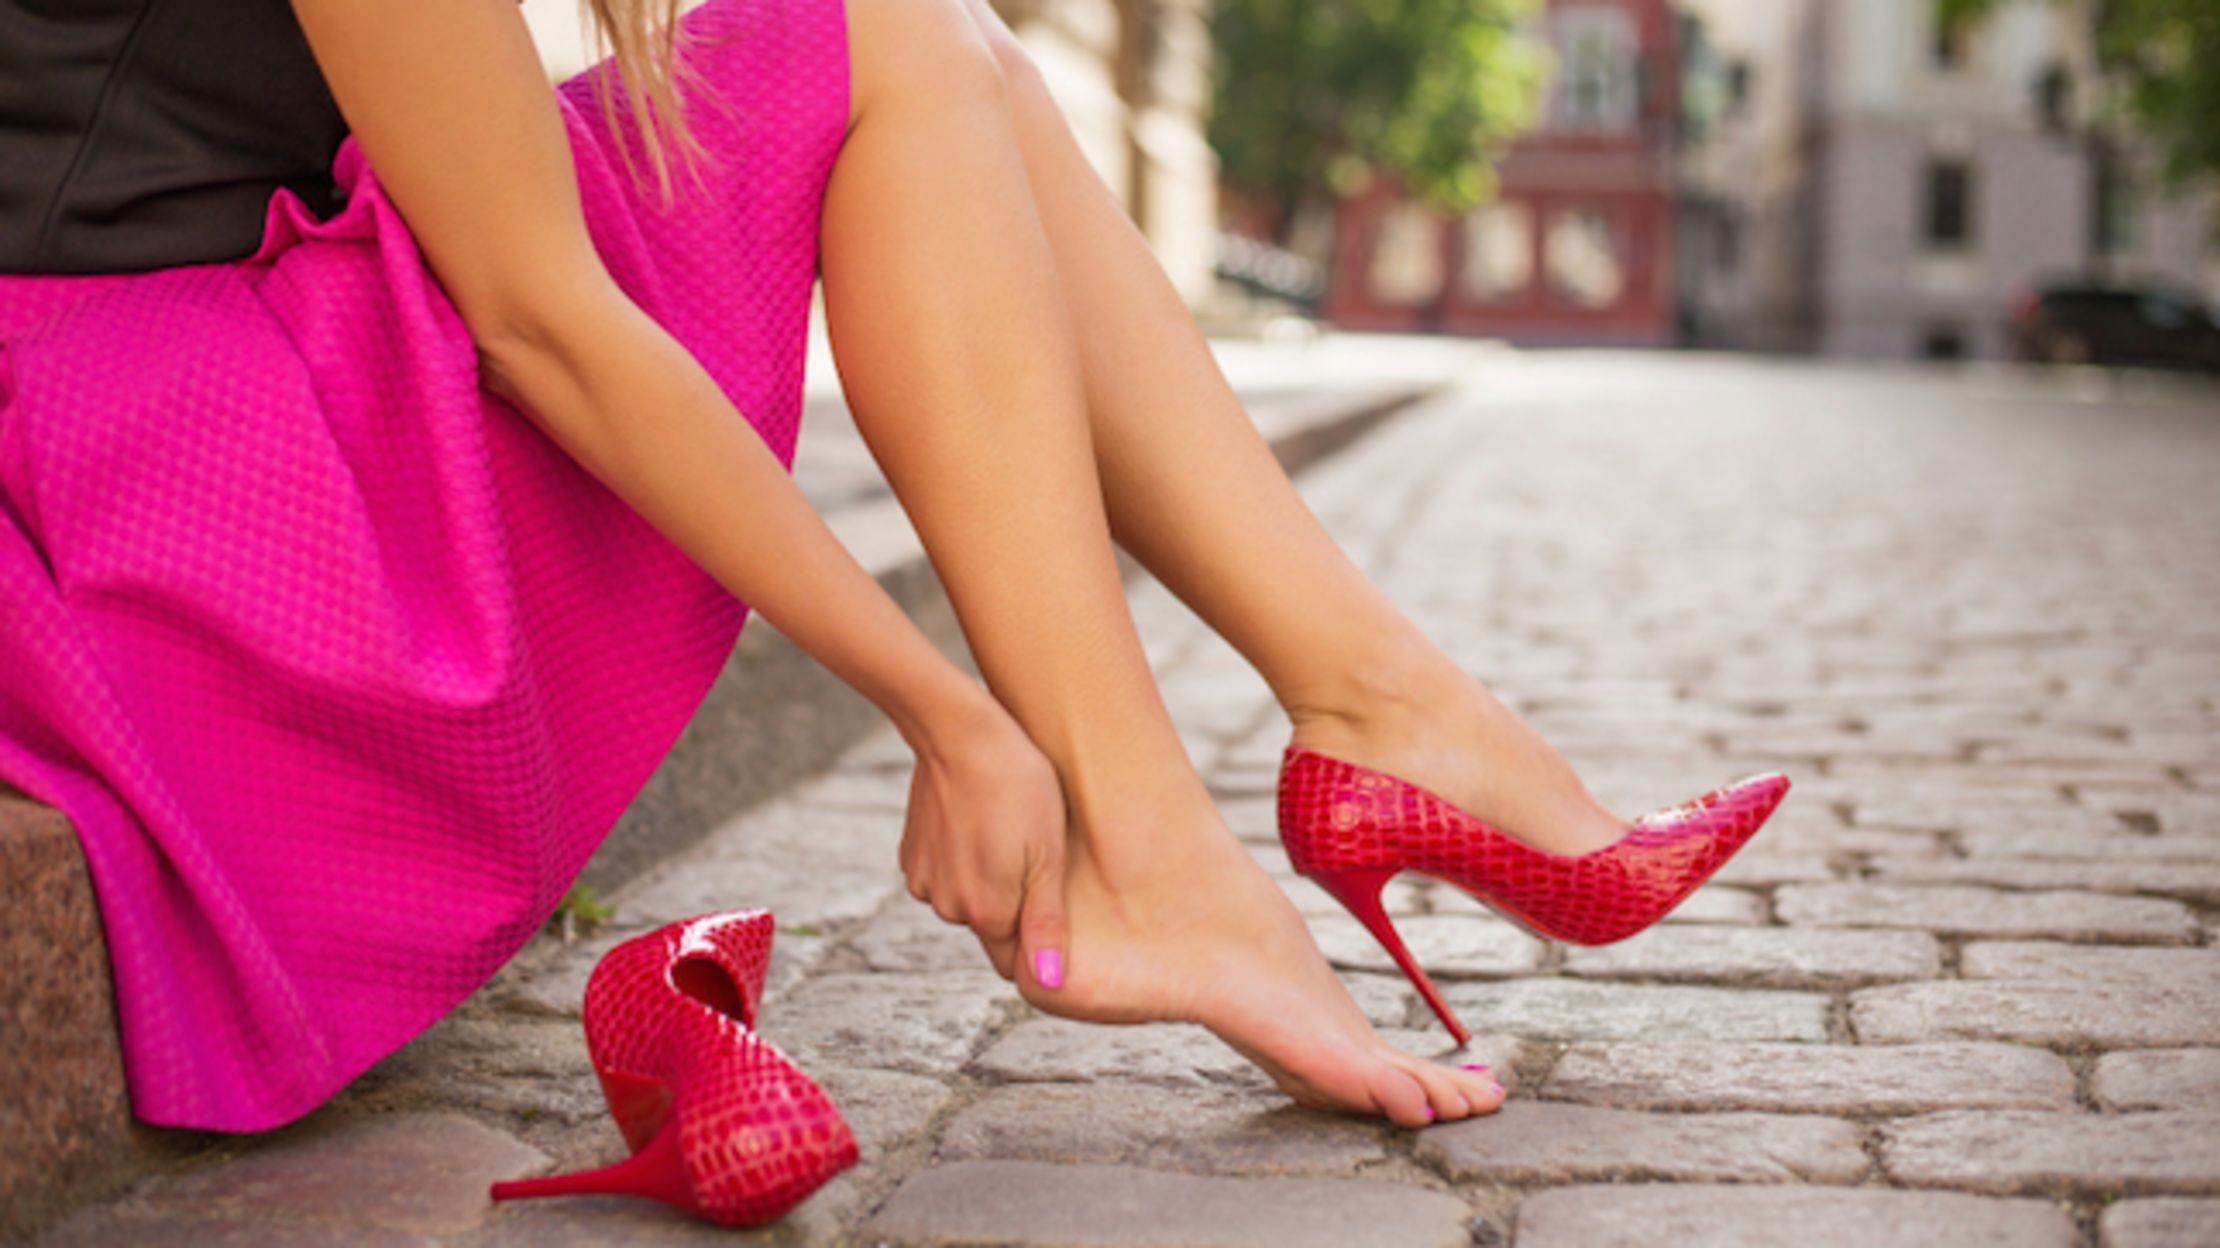 cf245766463 6 Tips for Wearing High Heels Without Wrecking Your Feet | Mental Floss